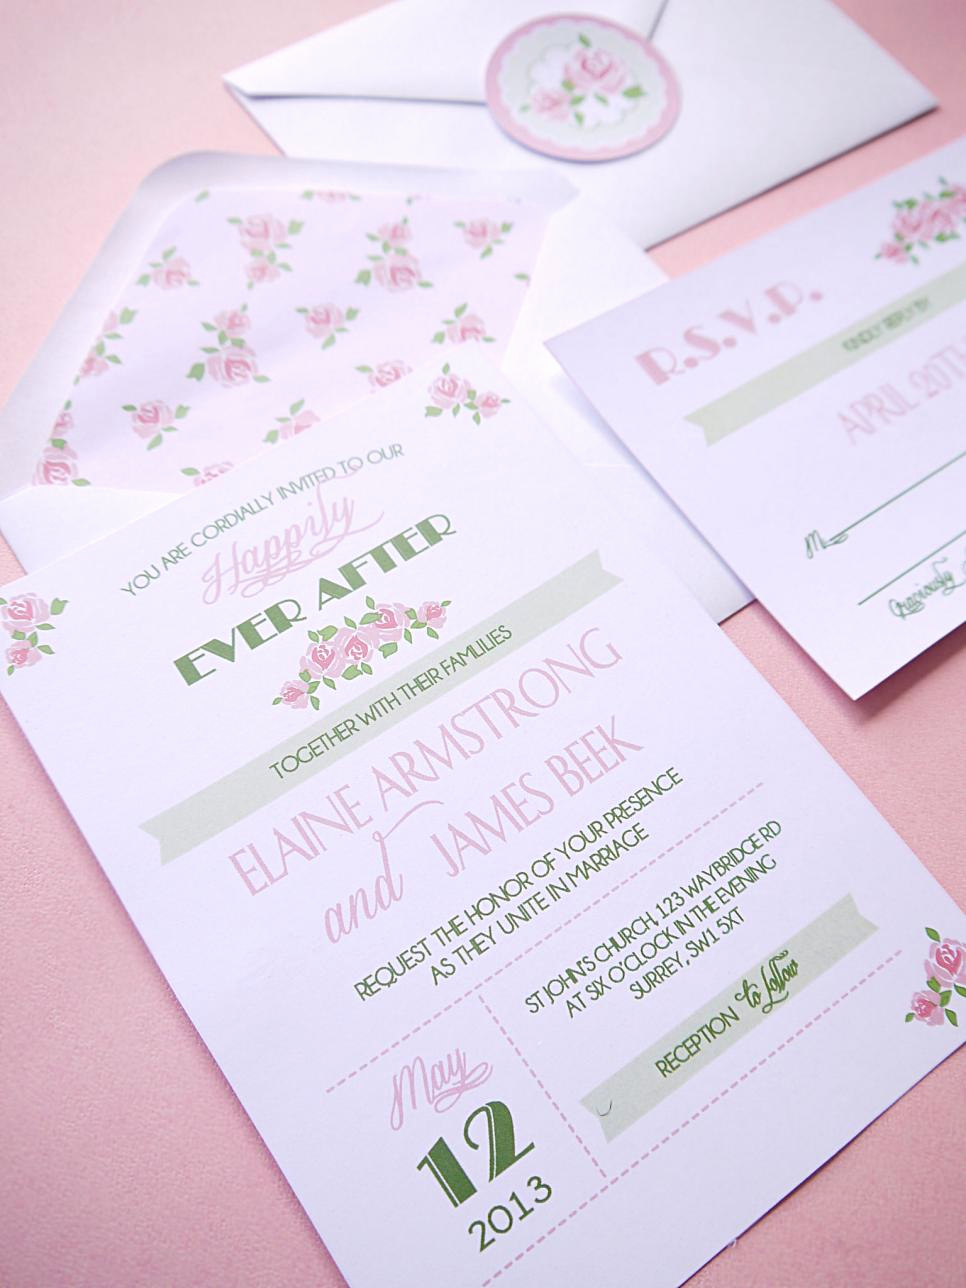 Diy Wedding Invitation Ideas Lovely Romantic Diy Wedding Ideas